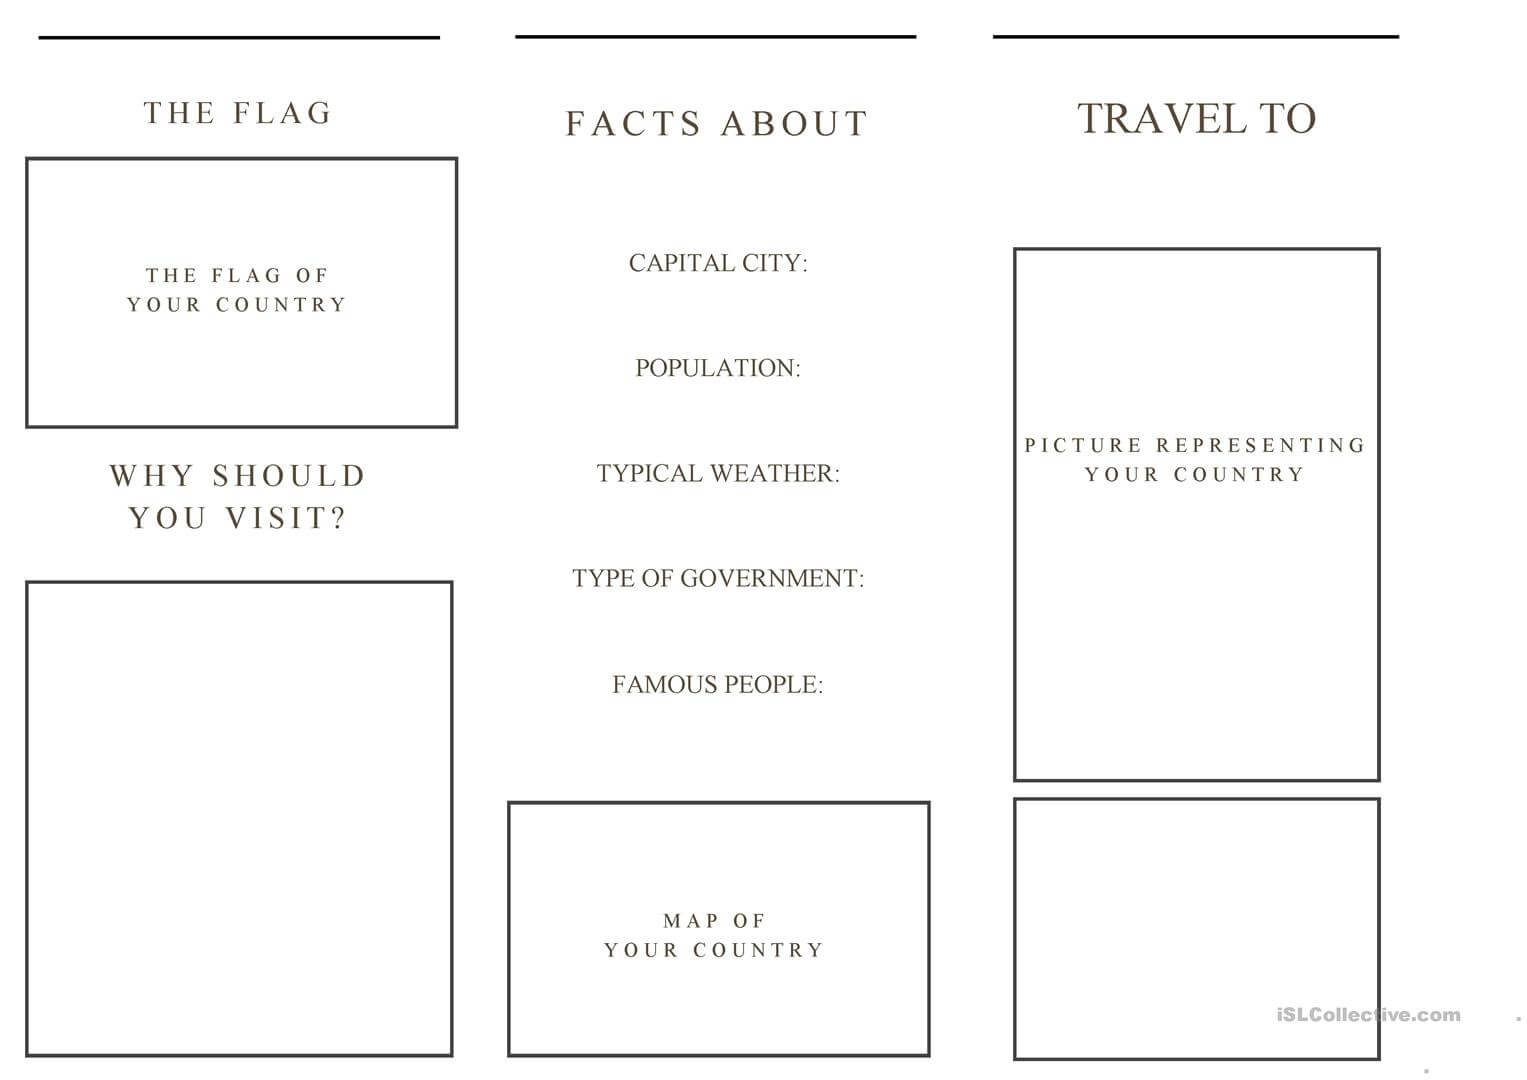 Travel Brochure Template And Example Brochure – English Esl Within Travel Brochure Template For Students